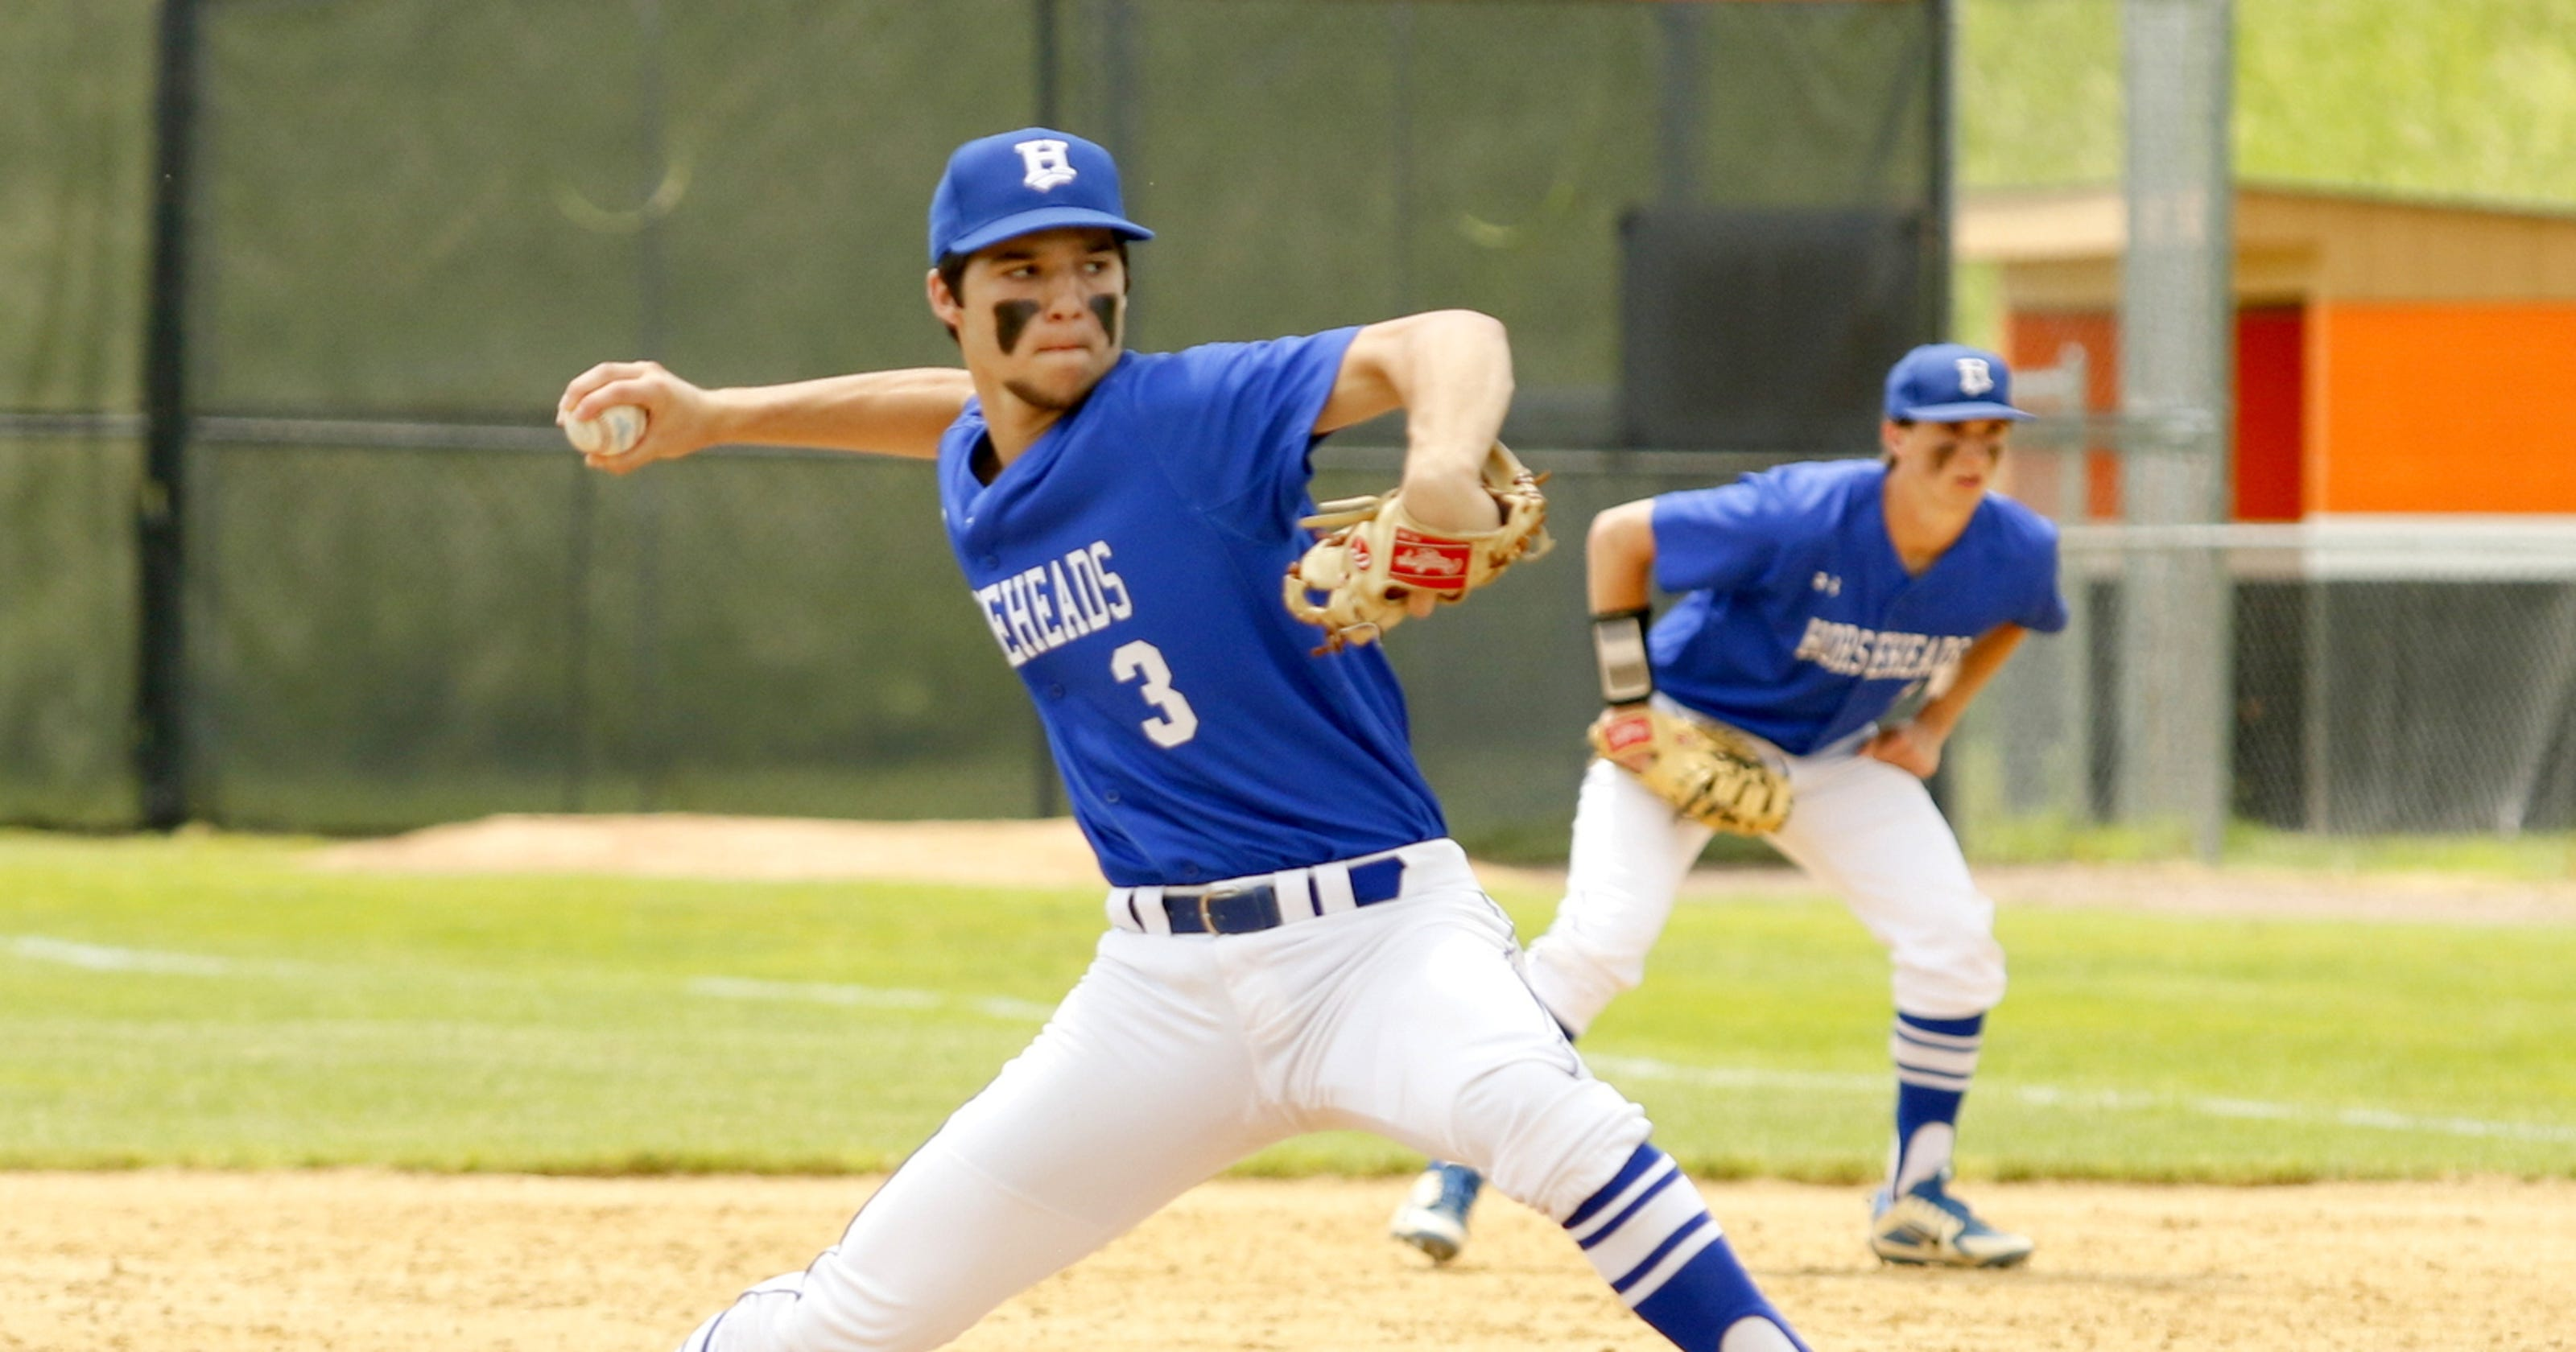 Horseheads senior standout Mike Limoncelli needs Tommy John